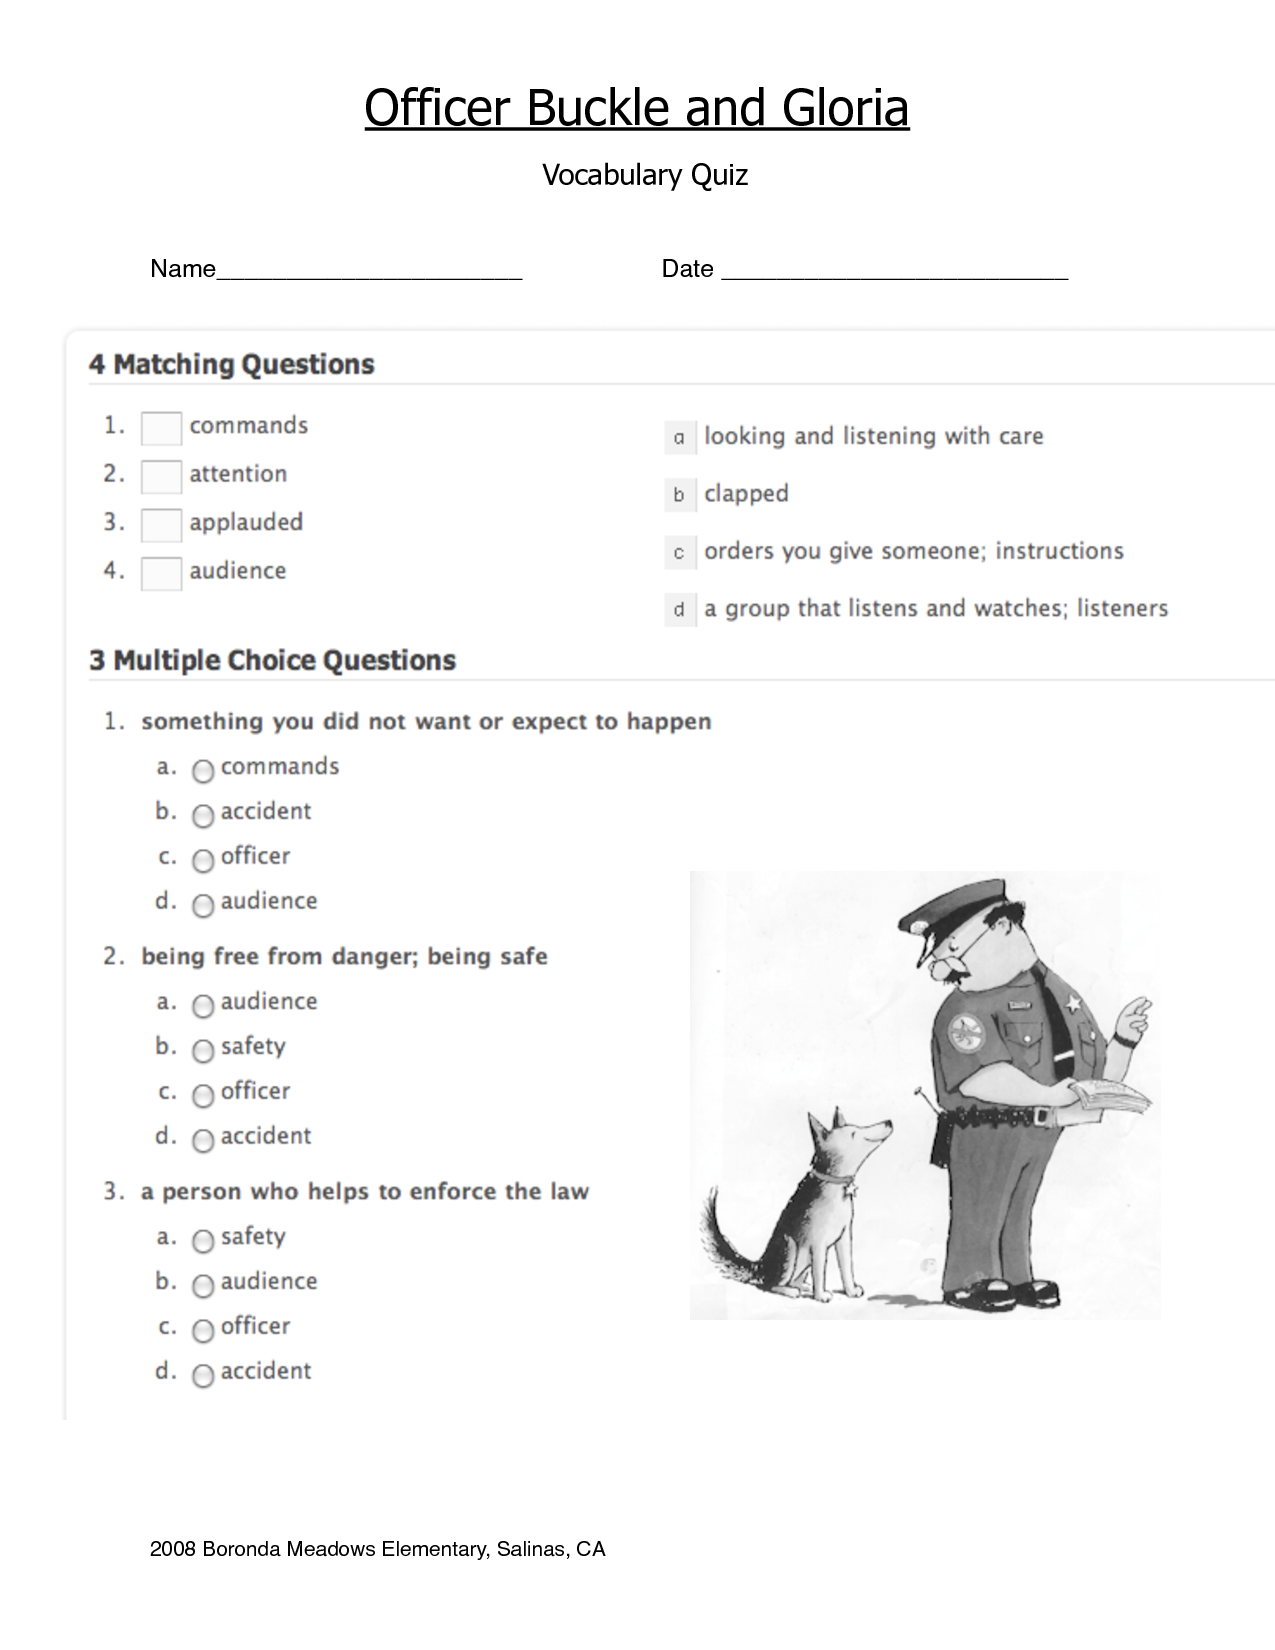 Worksheets Officer Buckle And Gloria Worksheets officerbuckleandgloria google search common core anchor chart free officer buckle gloria coloring pages